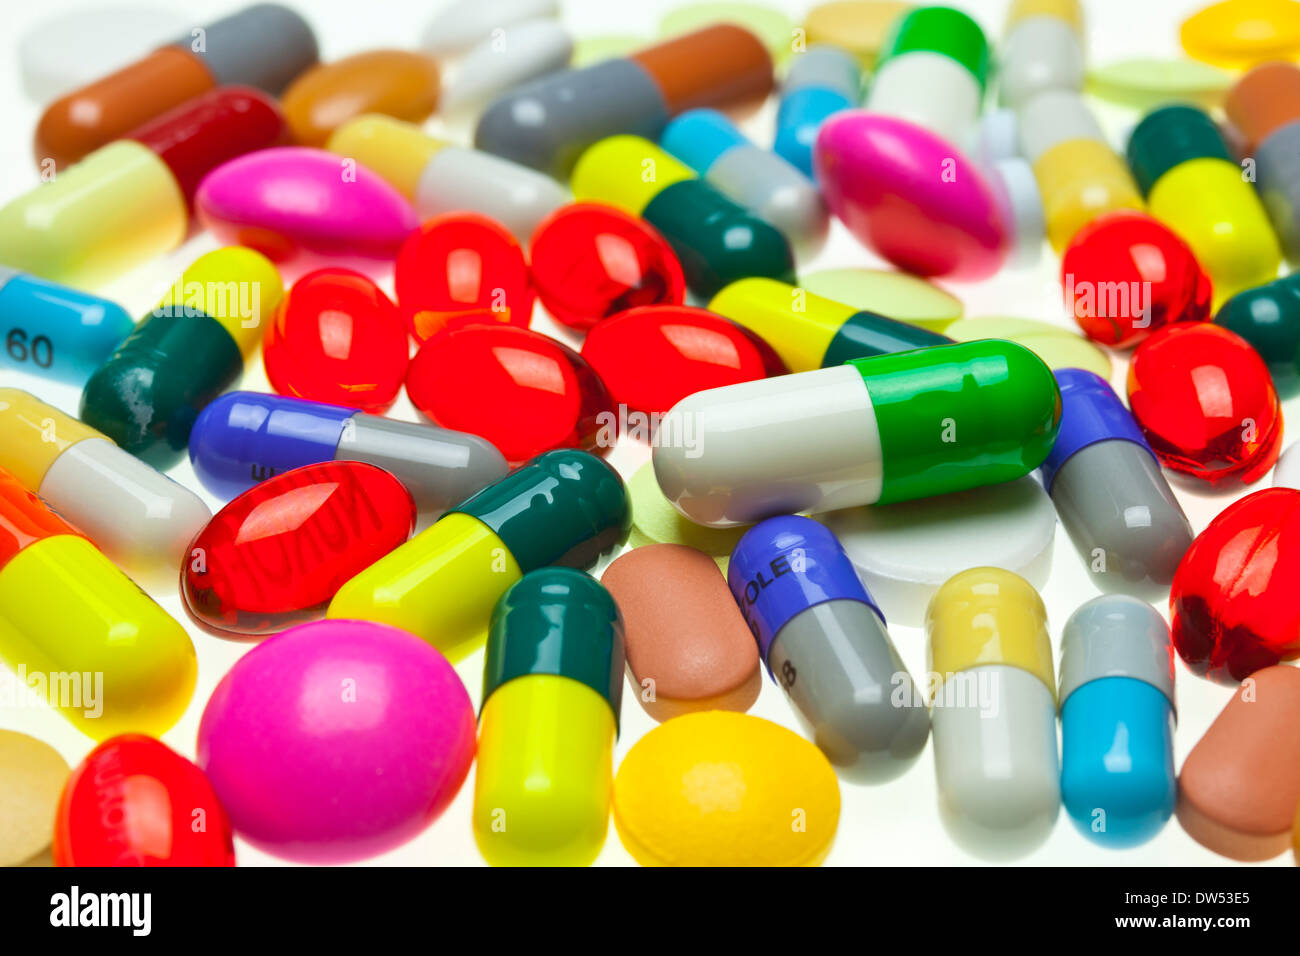 multi-coloured assorted medicines drugs pills and tablets on a white